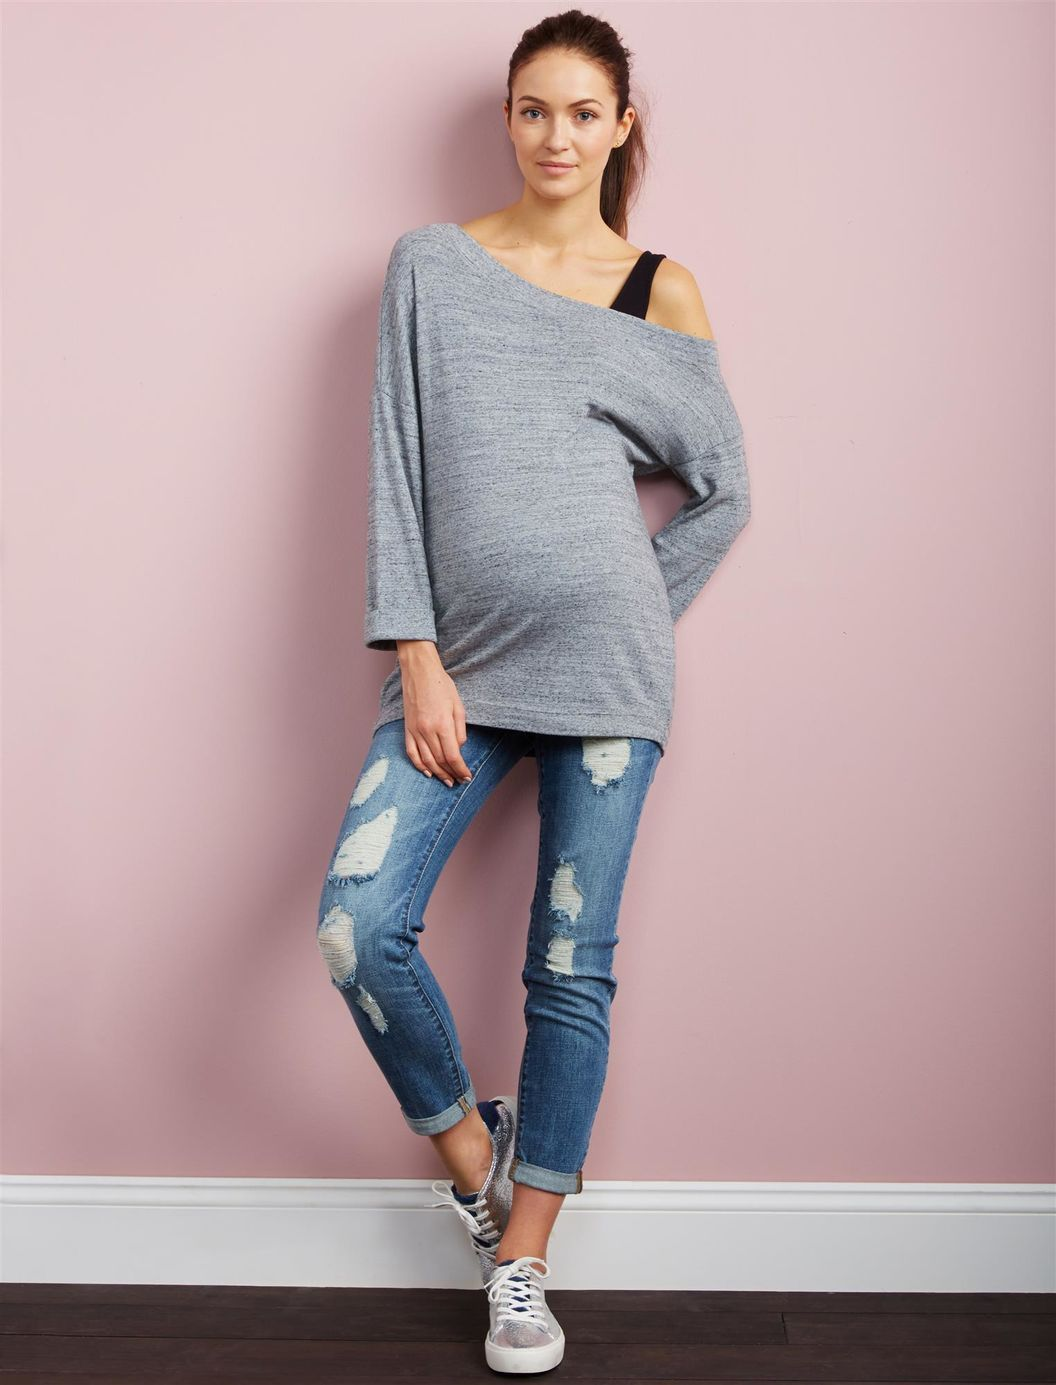 d4eae002c381f Luxe Essentials Denim Secret Fit Belly Destructed Boyfriend Maternity Jeans  | A Pea in the Pod Maternity